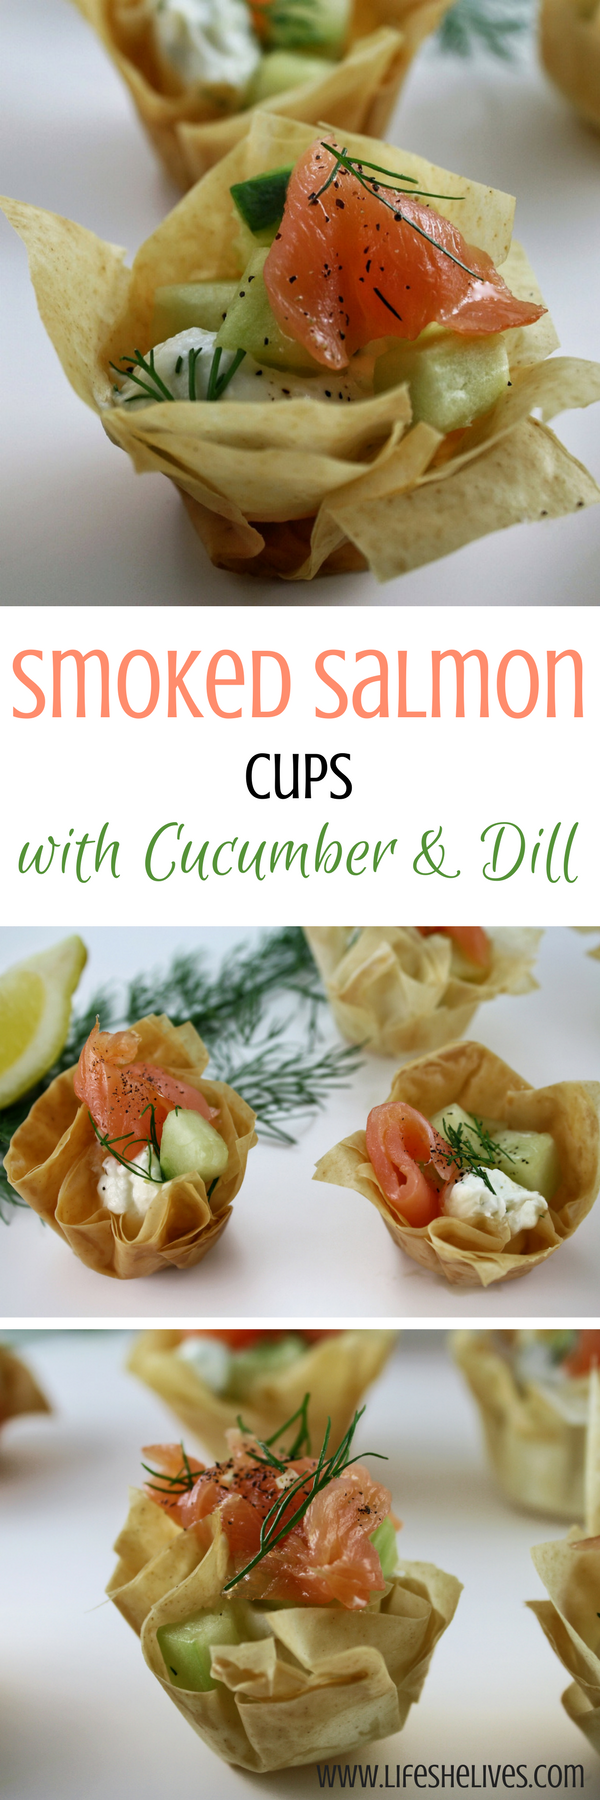 Smoked Salmon Cups With Cucumber & Dill